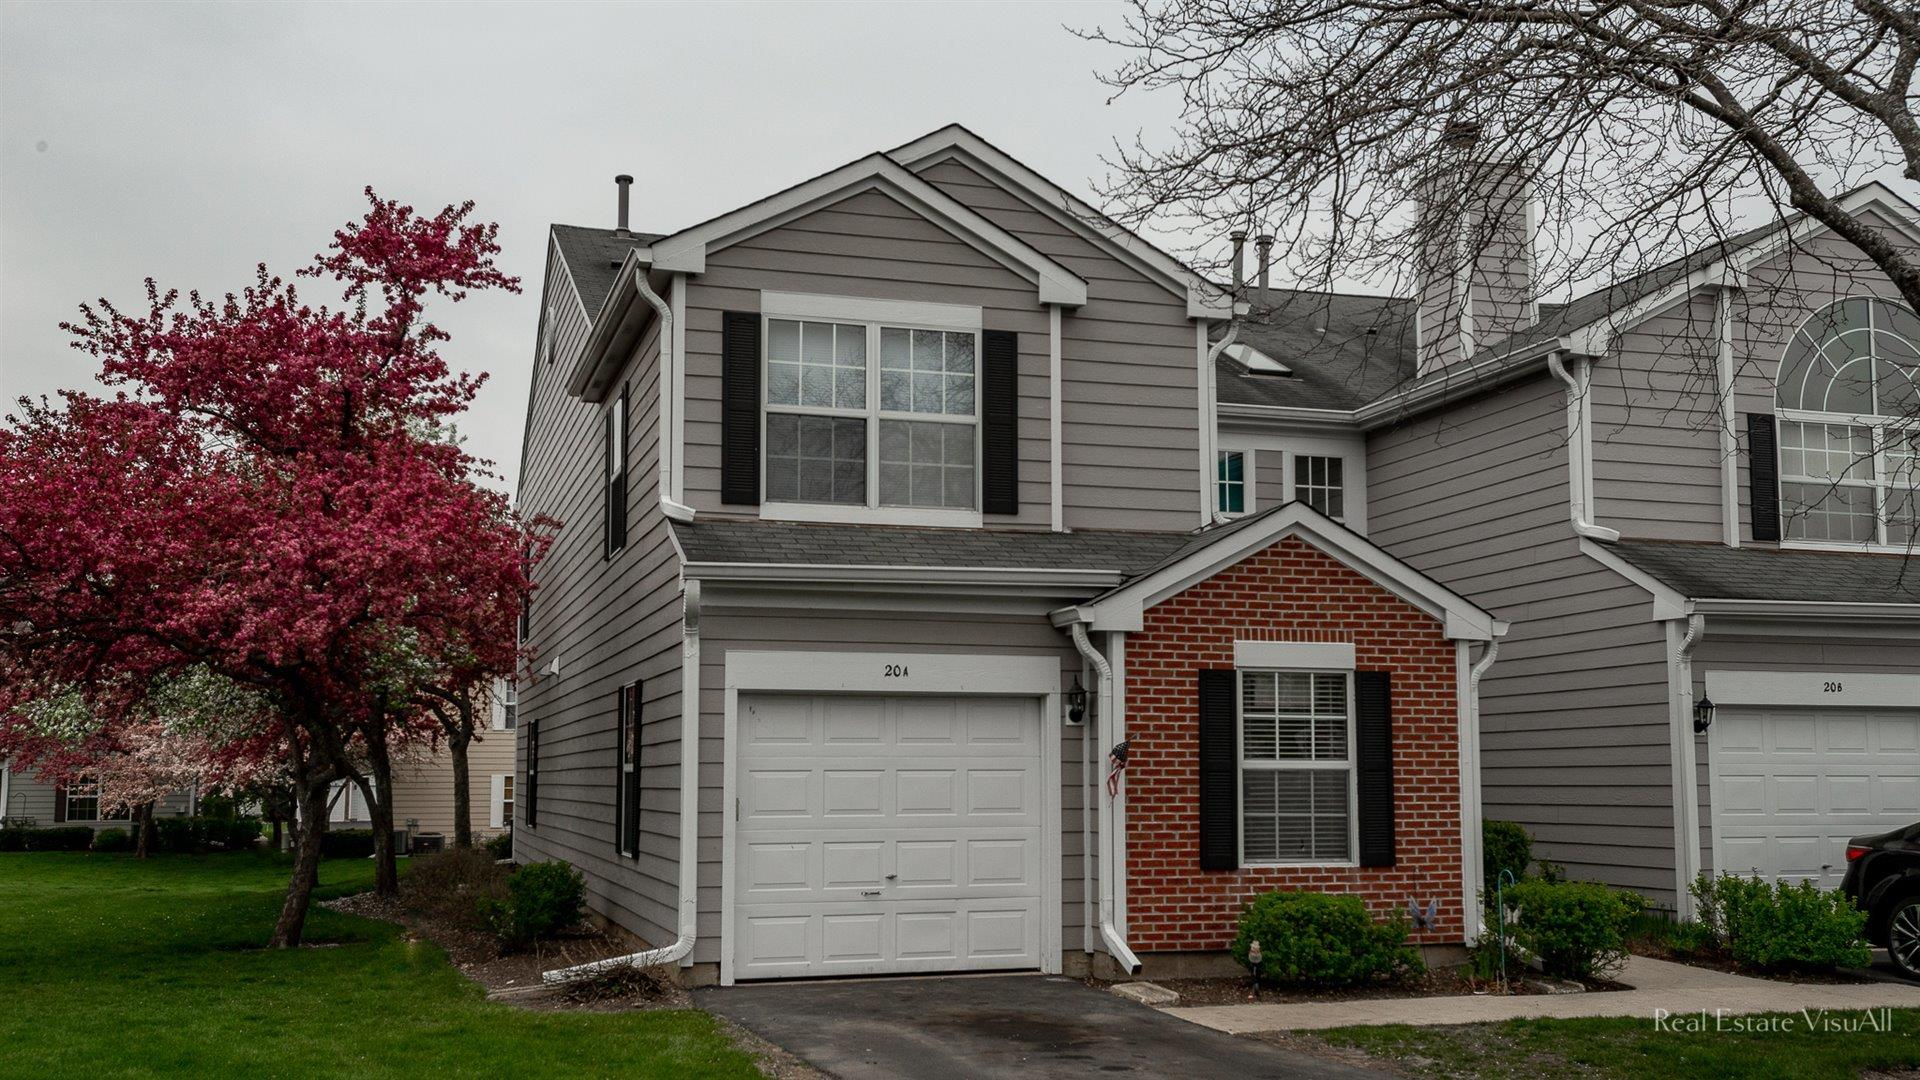 20 HOOVER Court #A, Streamwood, IL 60107 - #: 11070523